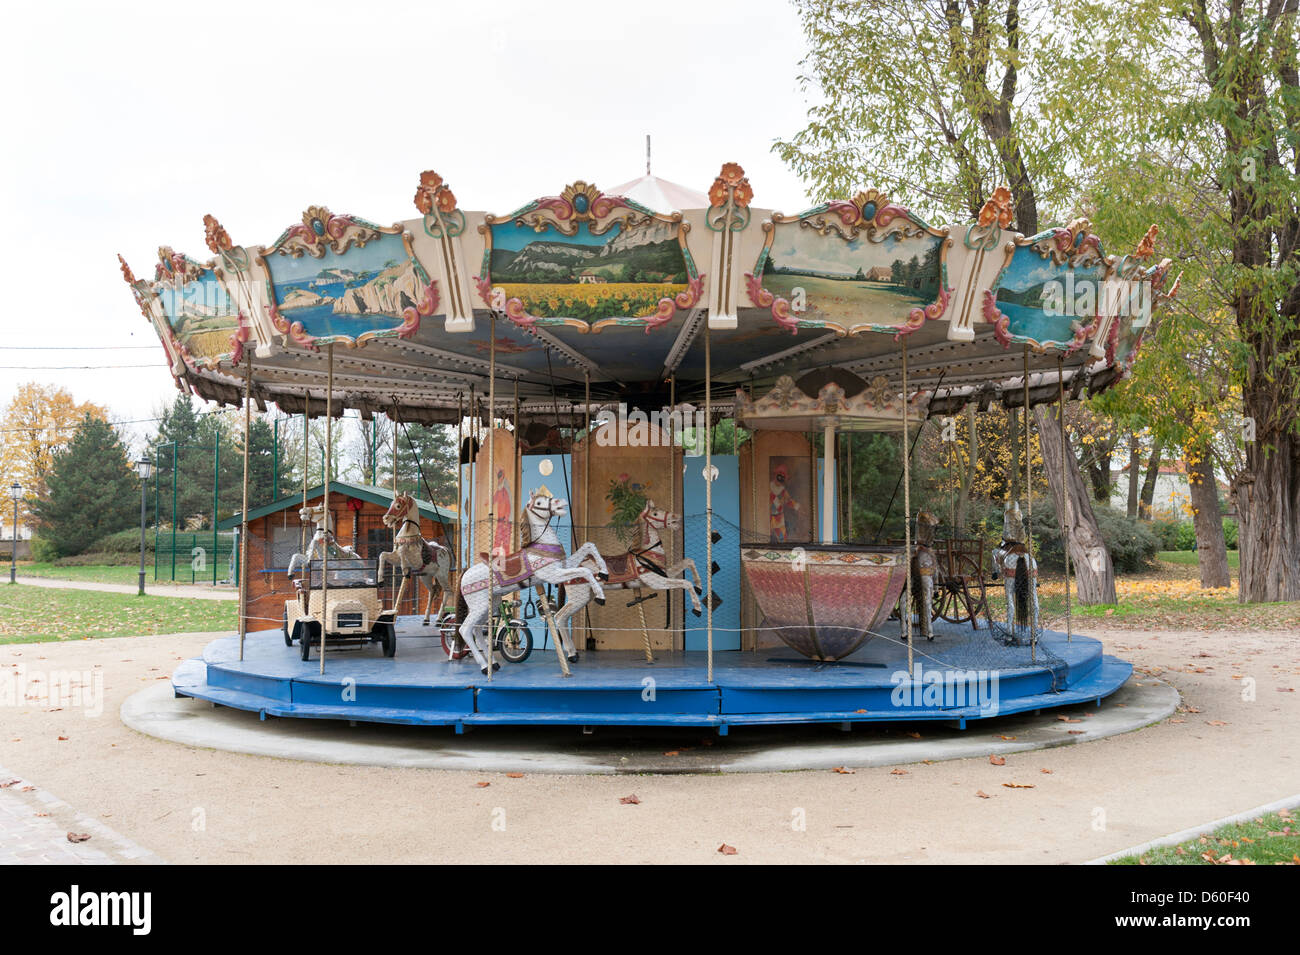 Disused fairground carousel in the Parisian suburb of Drancy - Stock Image